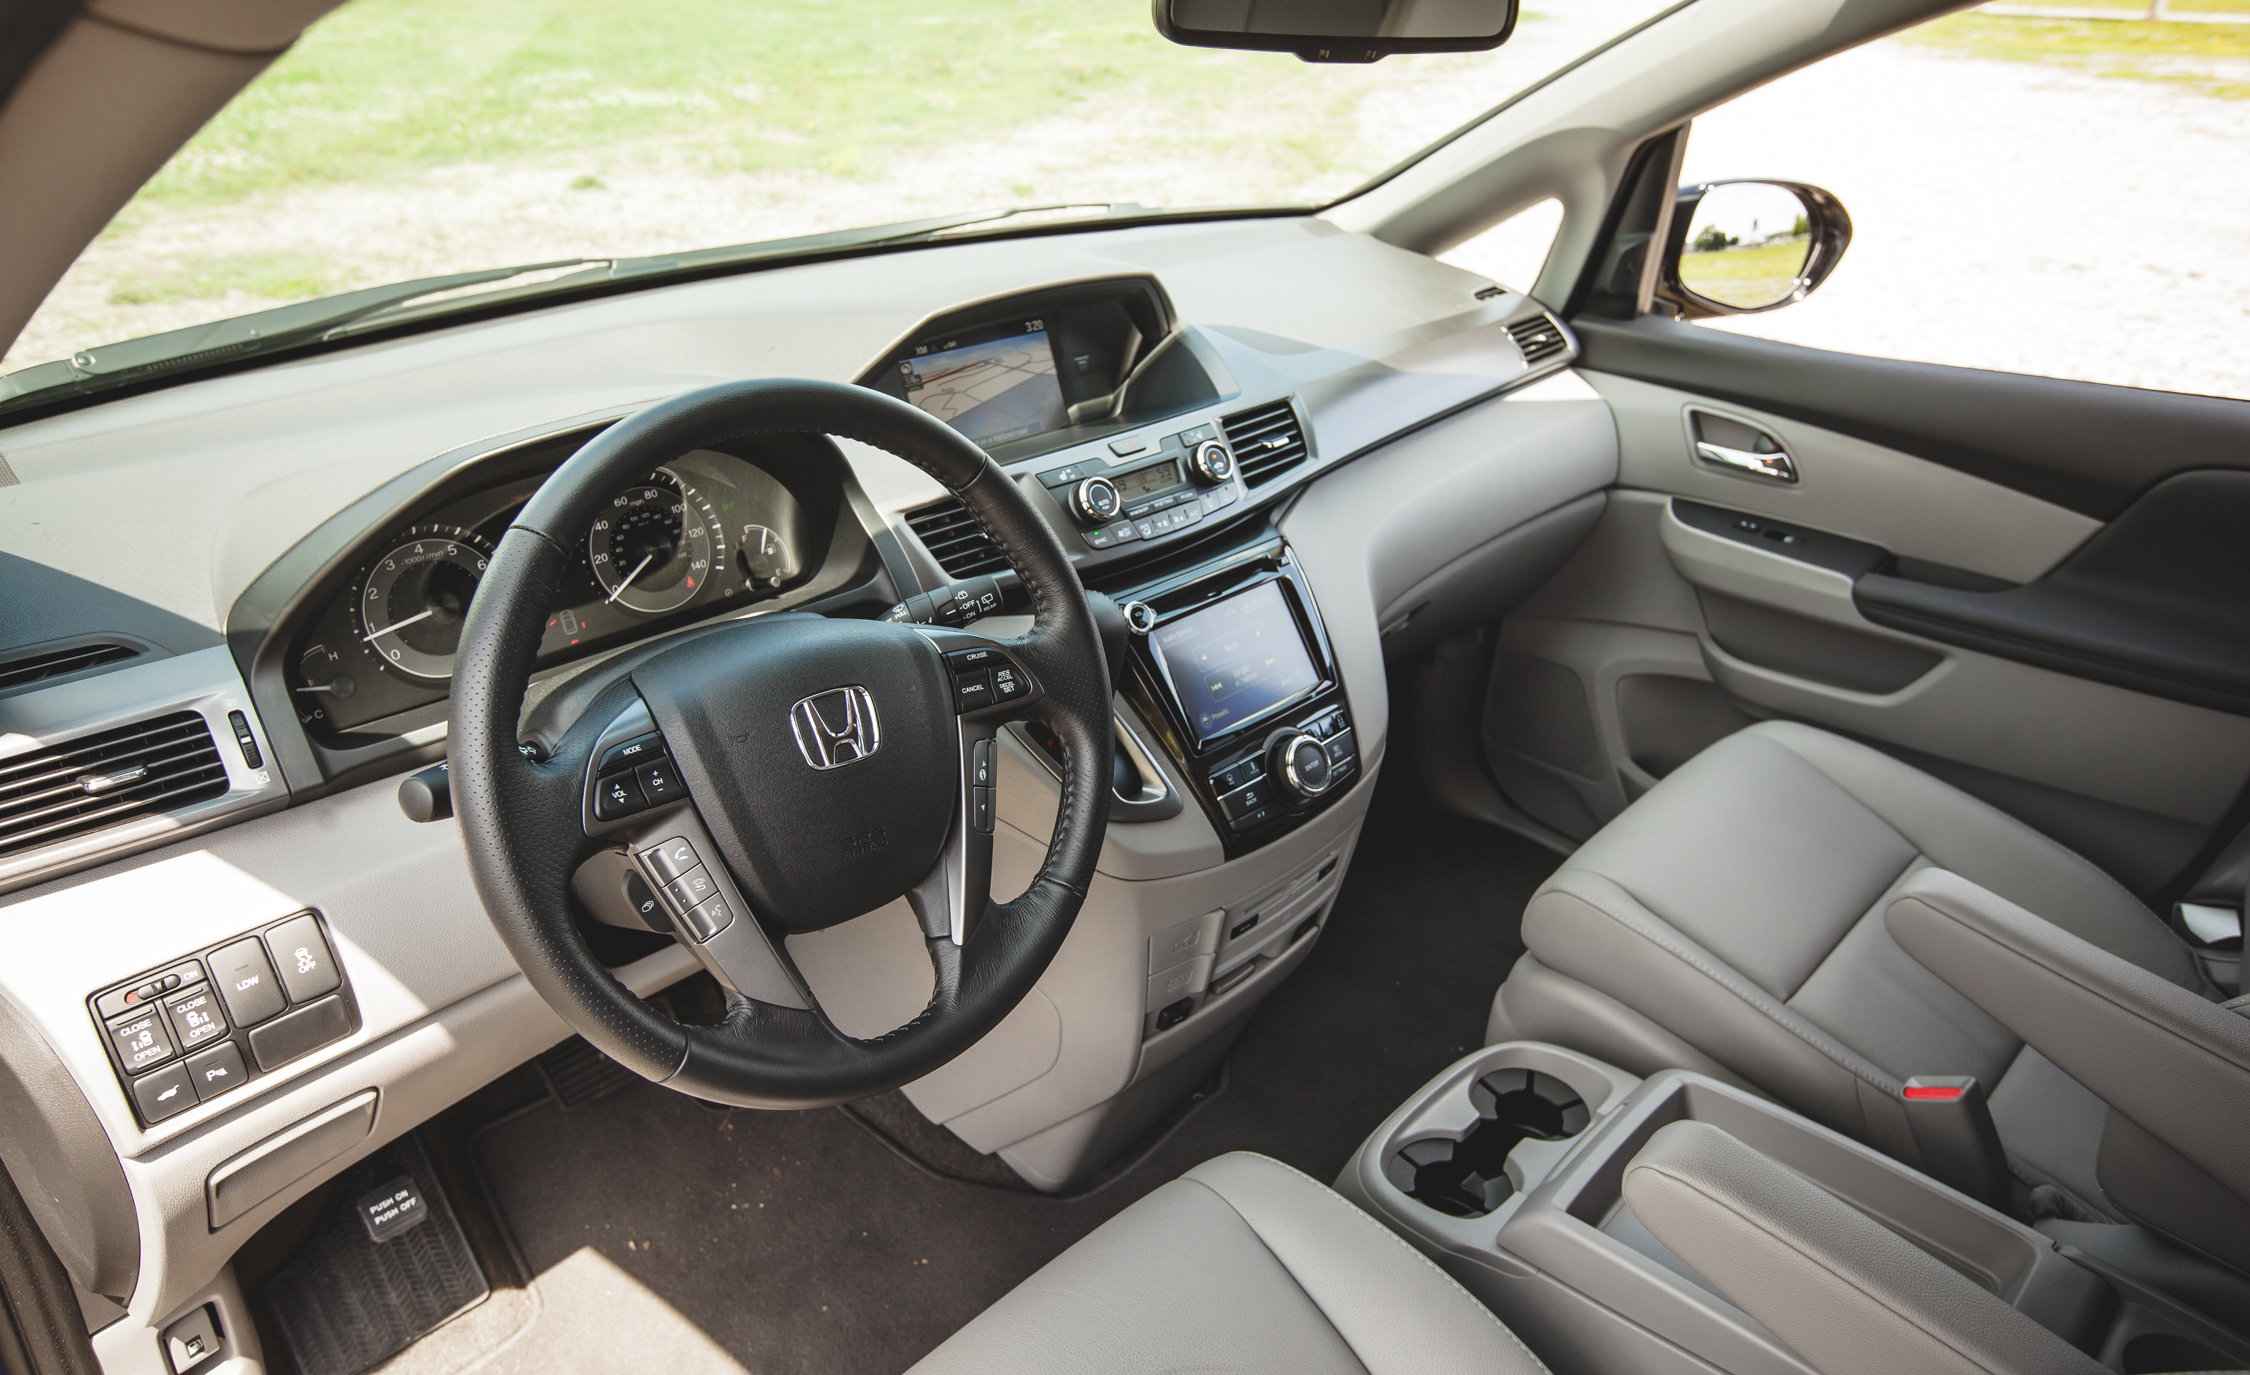 2014 Honda Odyssey Touring Elite Interior (Photo 12 of 19)